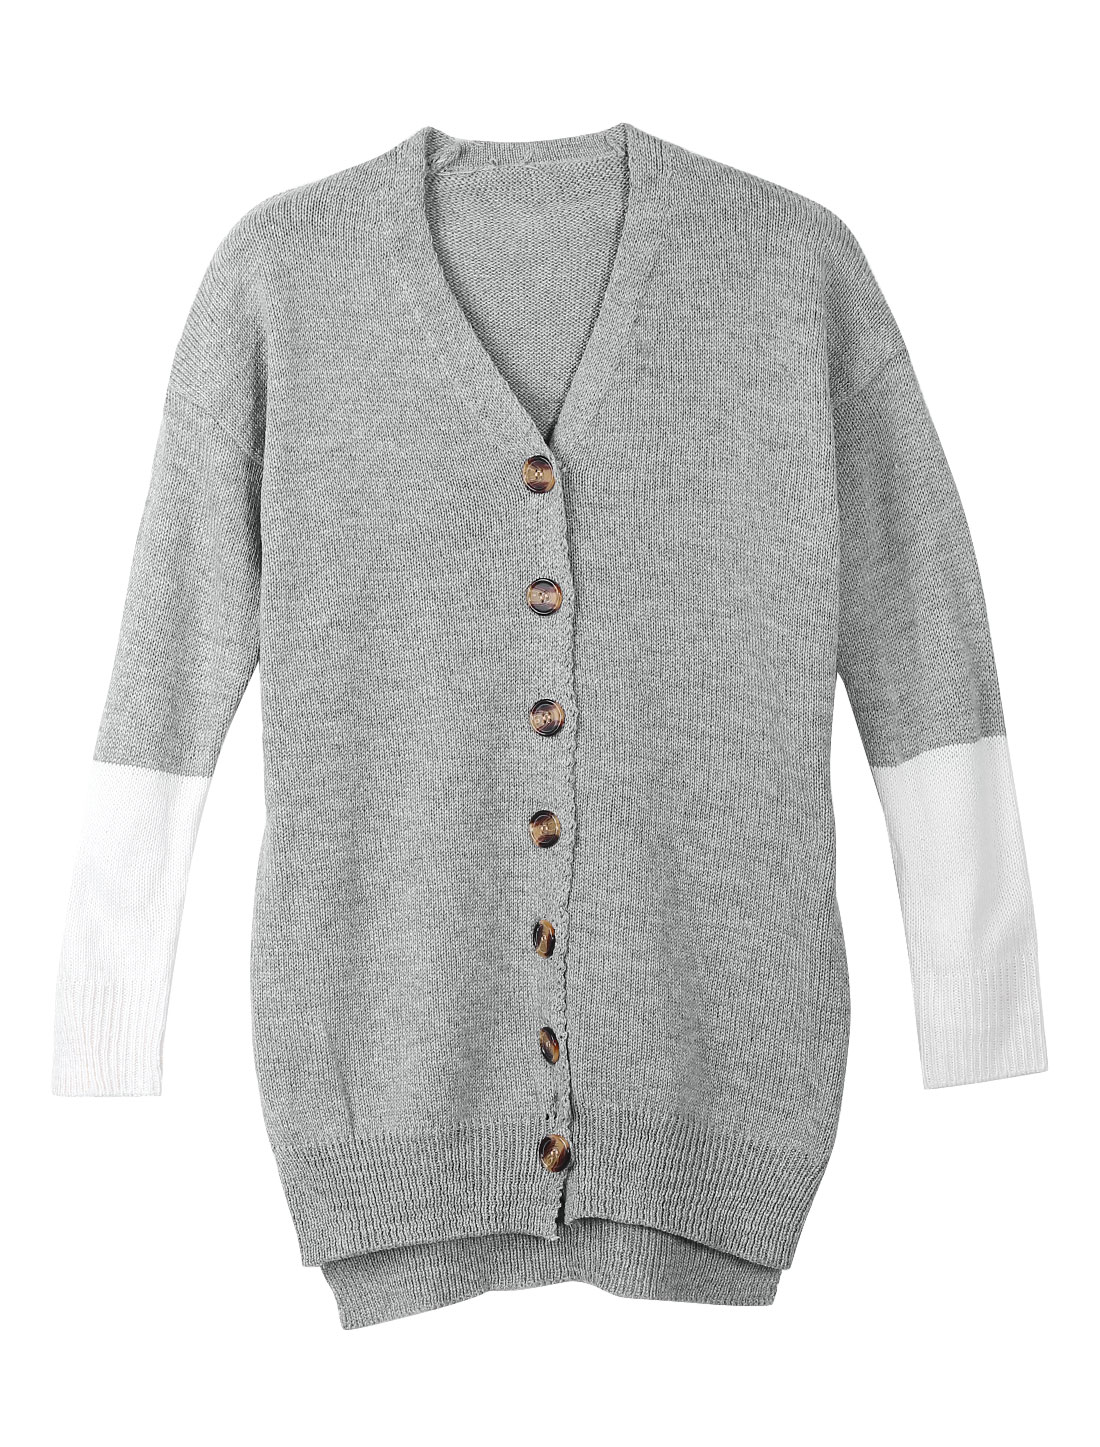 Lady Light Gray Single Breasted Irregular Hem Color Block Leisure Knit Cardigan XS